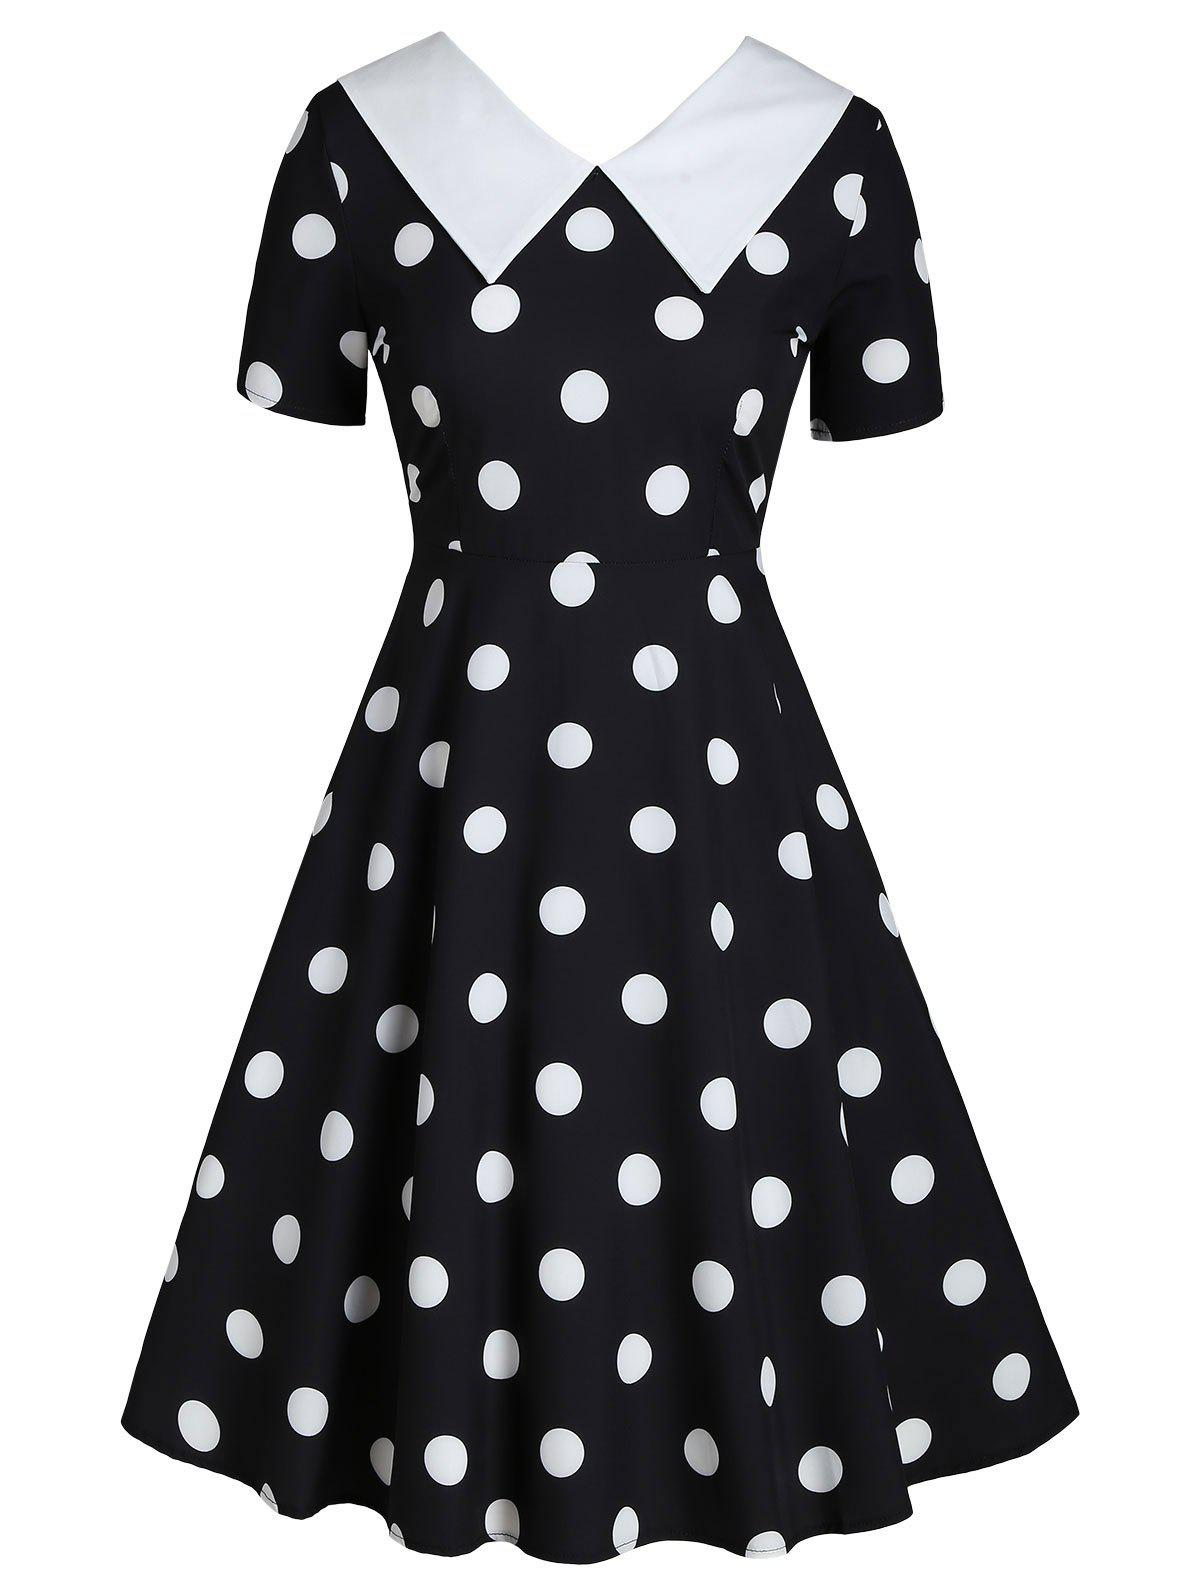 Hot Flat Collar Polka Dot Fit and Flare Vintage Dress